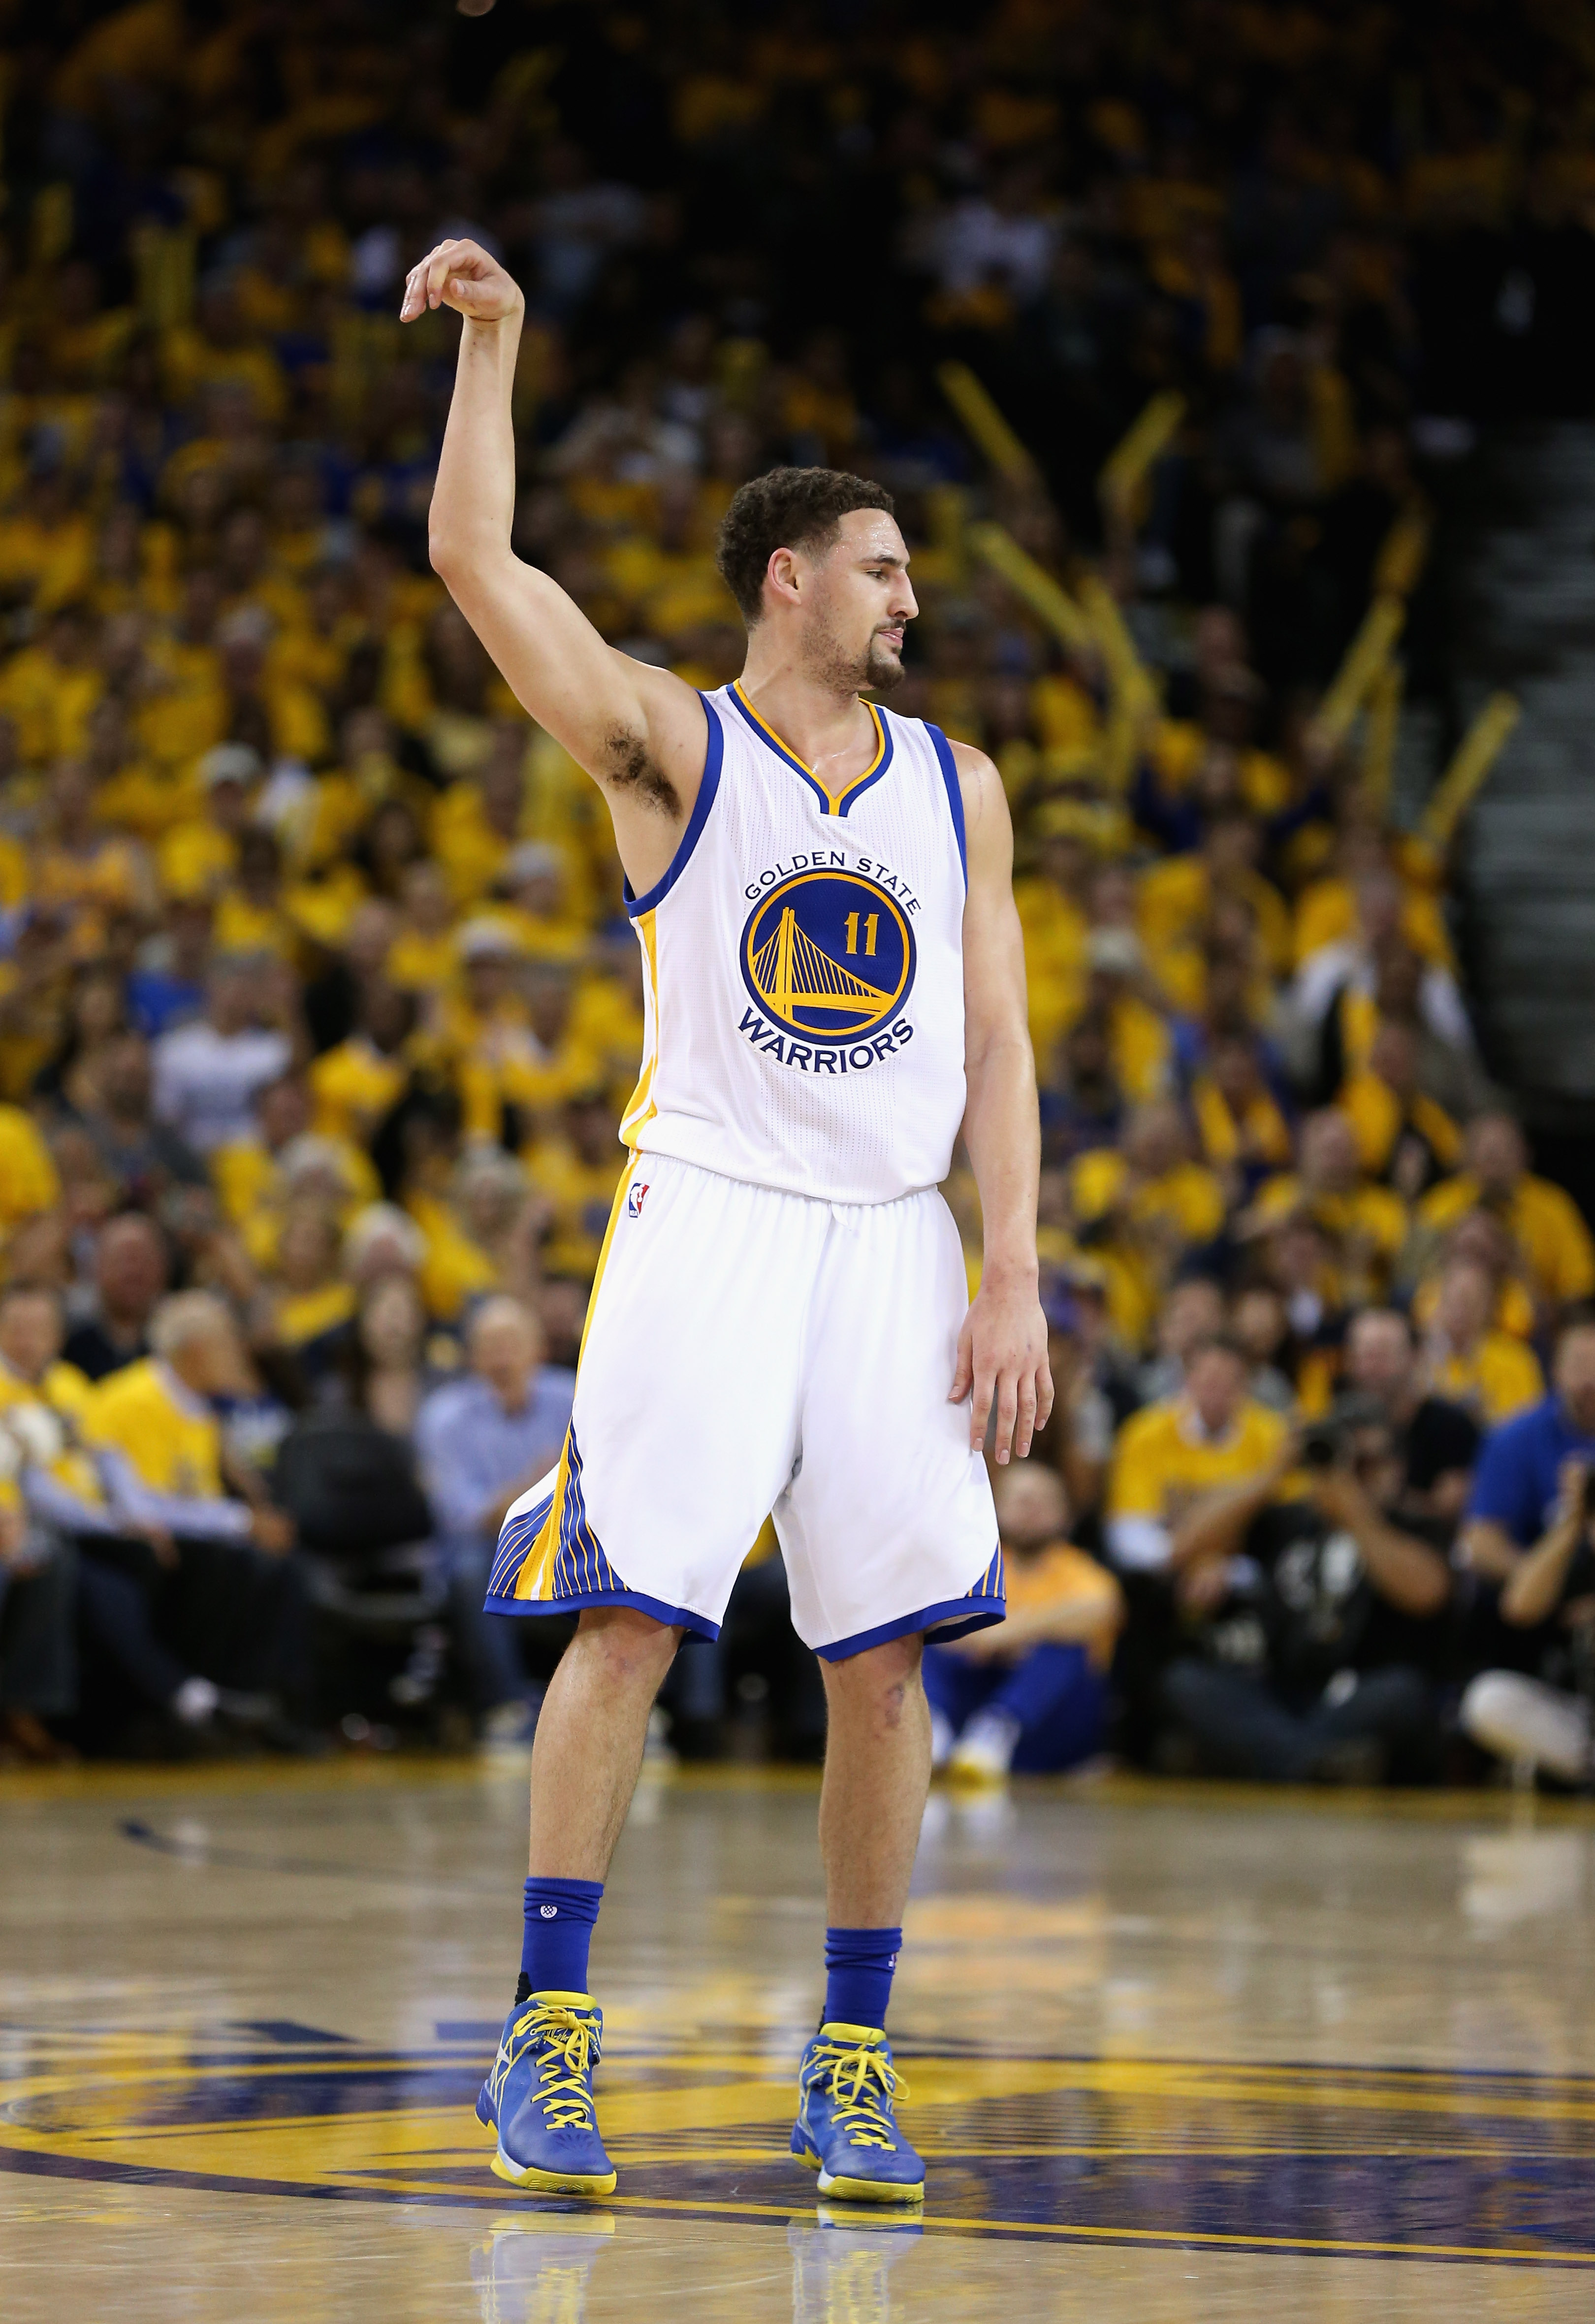 OAKLAND, CA - APRIL 27:  Klay Thompson #11 of the Golden State Warriors reacts after making a three-point basket against the Houston Rockets in Game Five of the Western Conference Quarterfinals during the 2016 NBA Playoffs at ORACLE Arena on April 27, 201